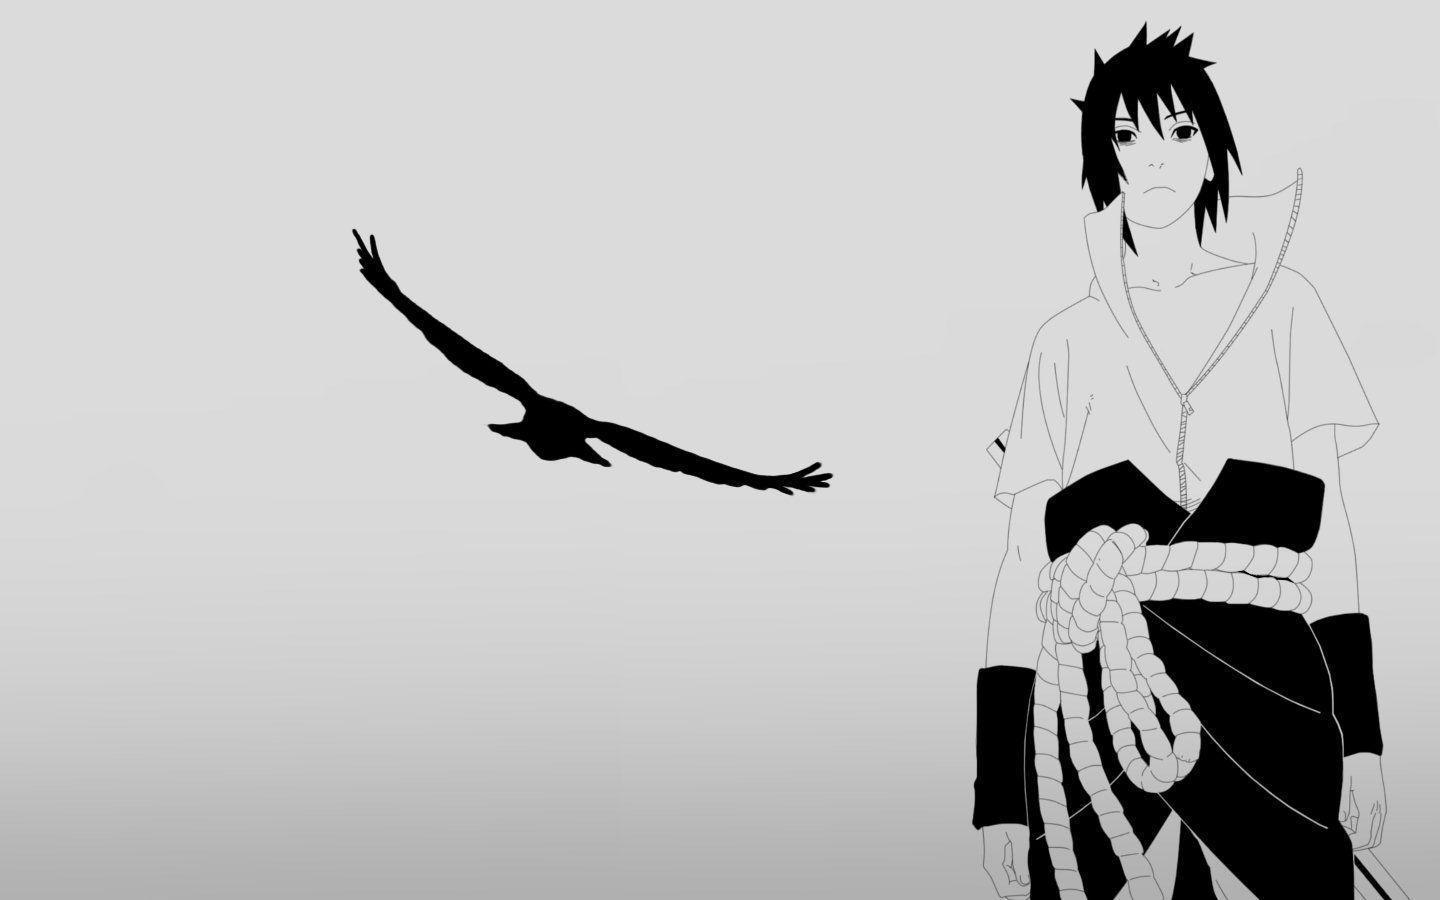 Wallpapers For > Sasuke Shippuden Wallpapers